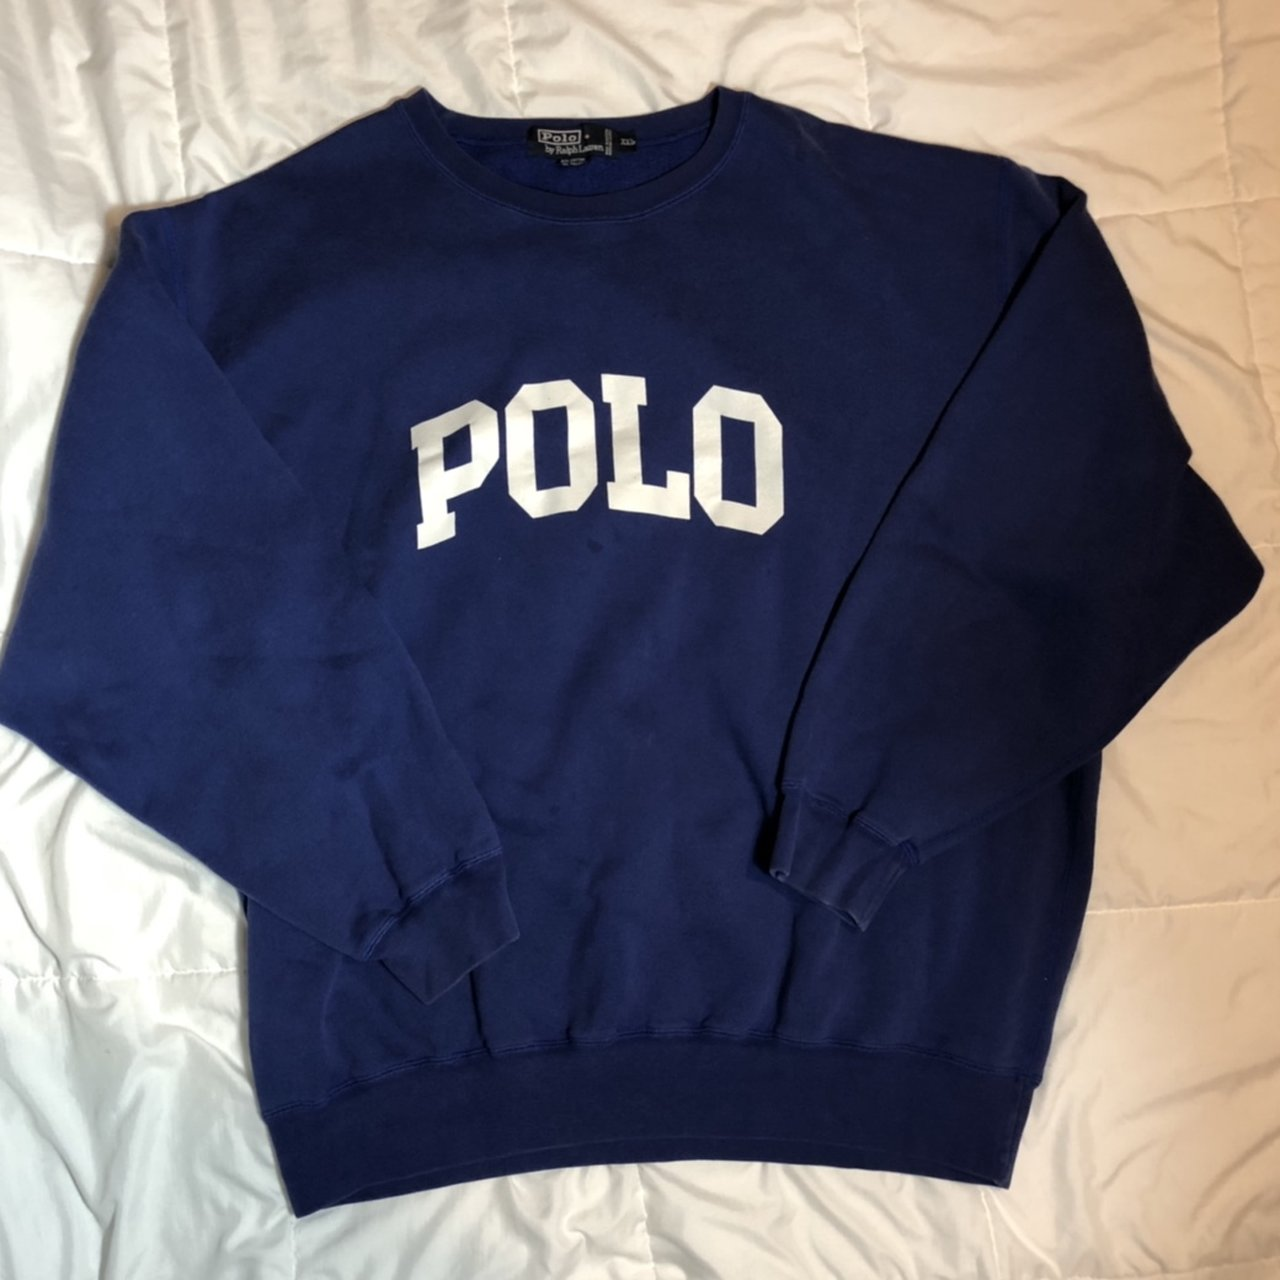 Polo Ralph Lauren sweatshirt Women s XXL (fits like a men s - Depop 70aad5264c